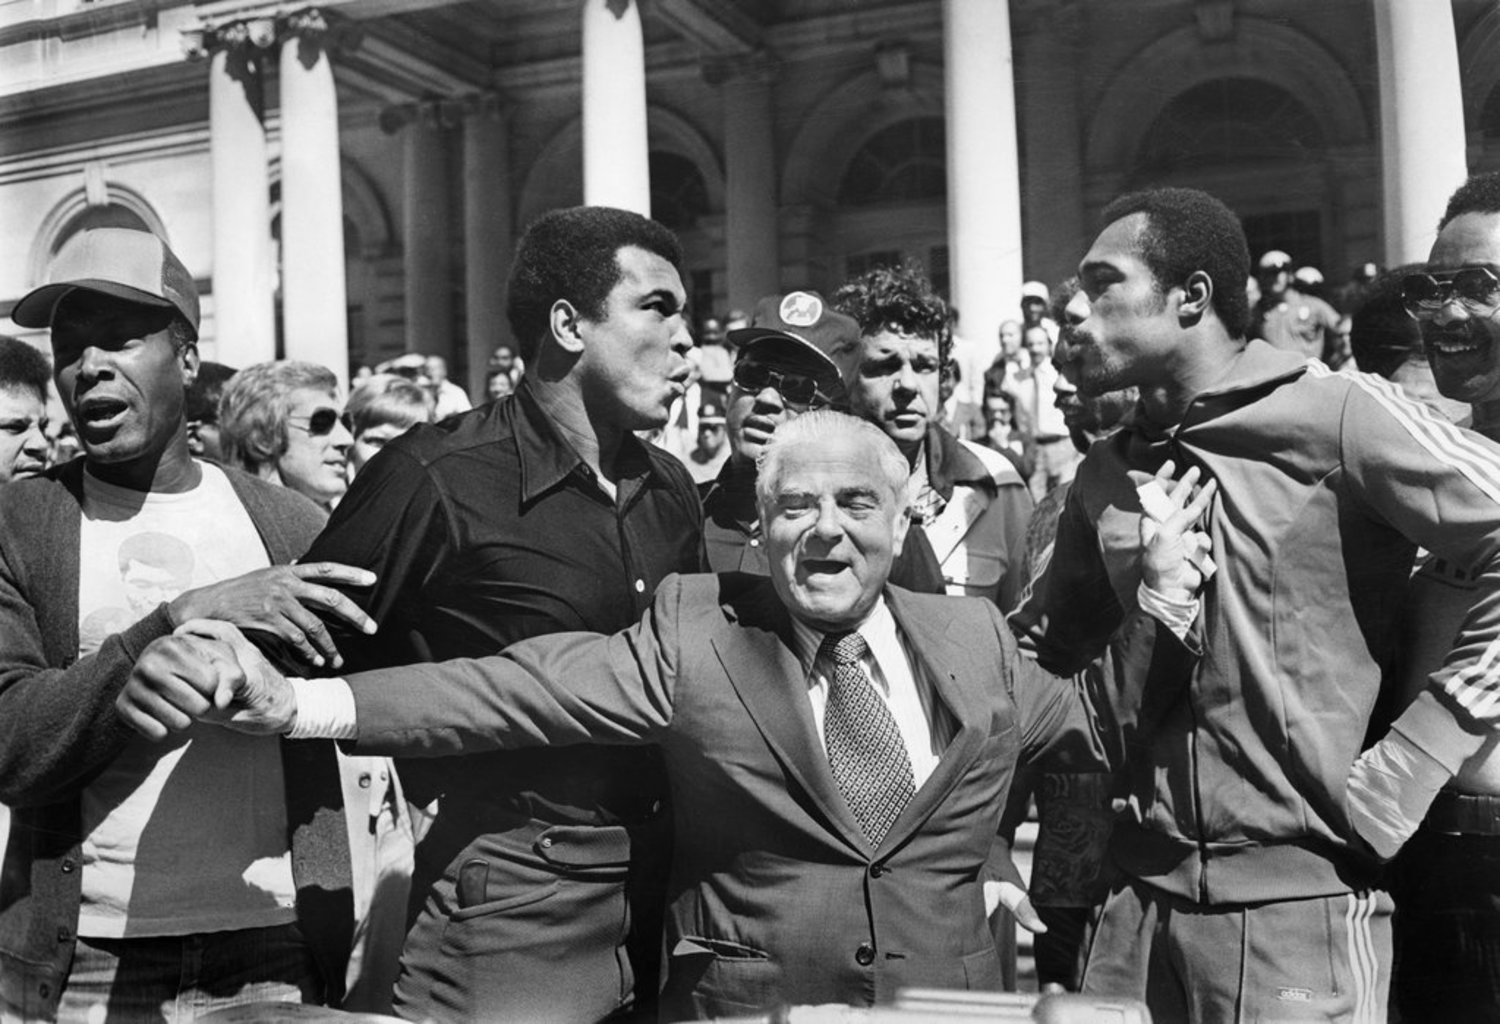 """Sept. 13, 1976: Feathers ruffled, chests puffed out, Muhammad Ali, left, and Ken Norton, right, talked tough for the benefit of the media on the steps of City Hall (photo Page 47 of this paper). Fortunately, Mayor Beame was on hand to keep the peace. The peace ended, according to schedule, on Sept. 28 when Ali beat Norton and retained the world heavyweight championship, though not without controversy. """"I thought I won it,"""" Norton said later. """"Ali knew I won it. The people knew I won it."""""""